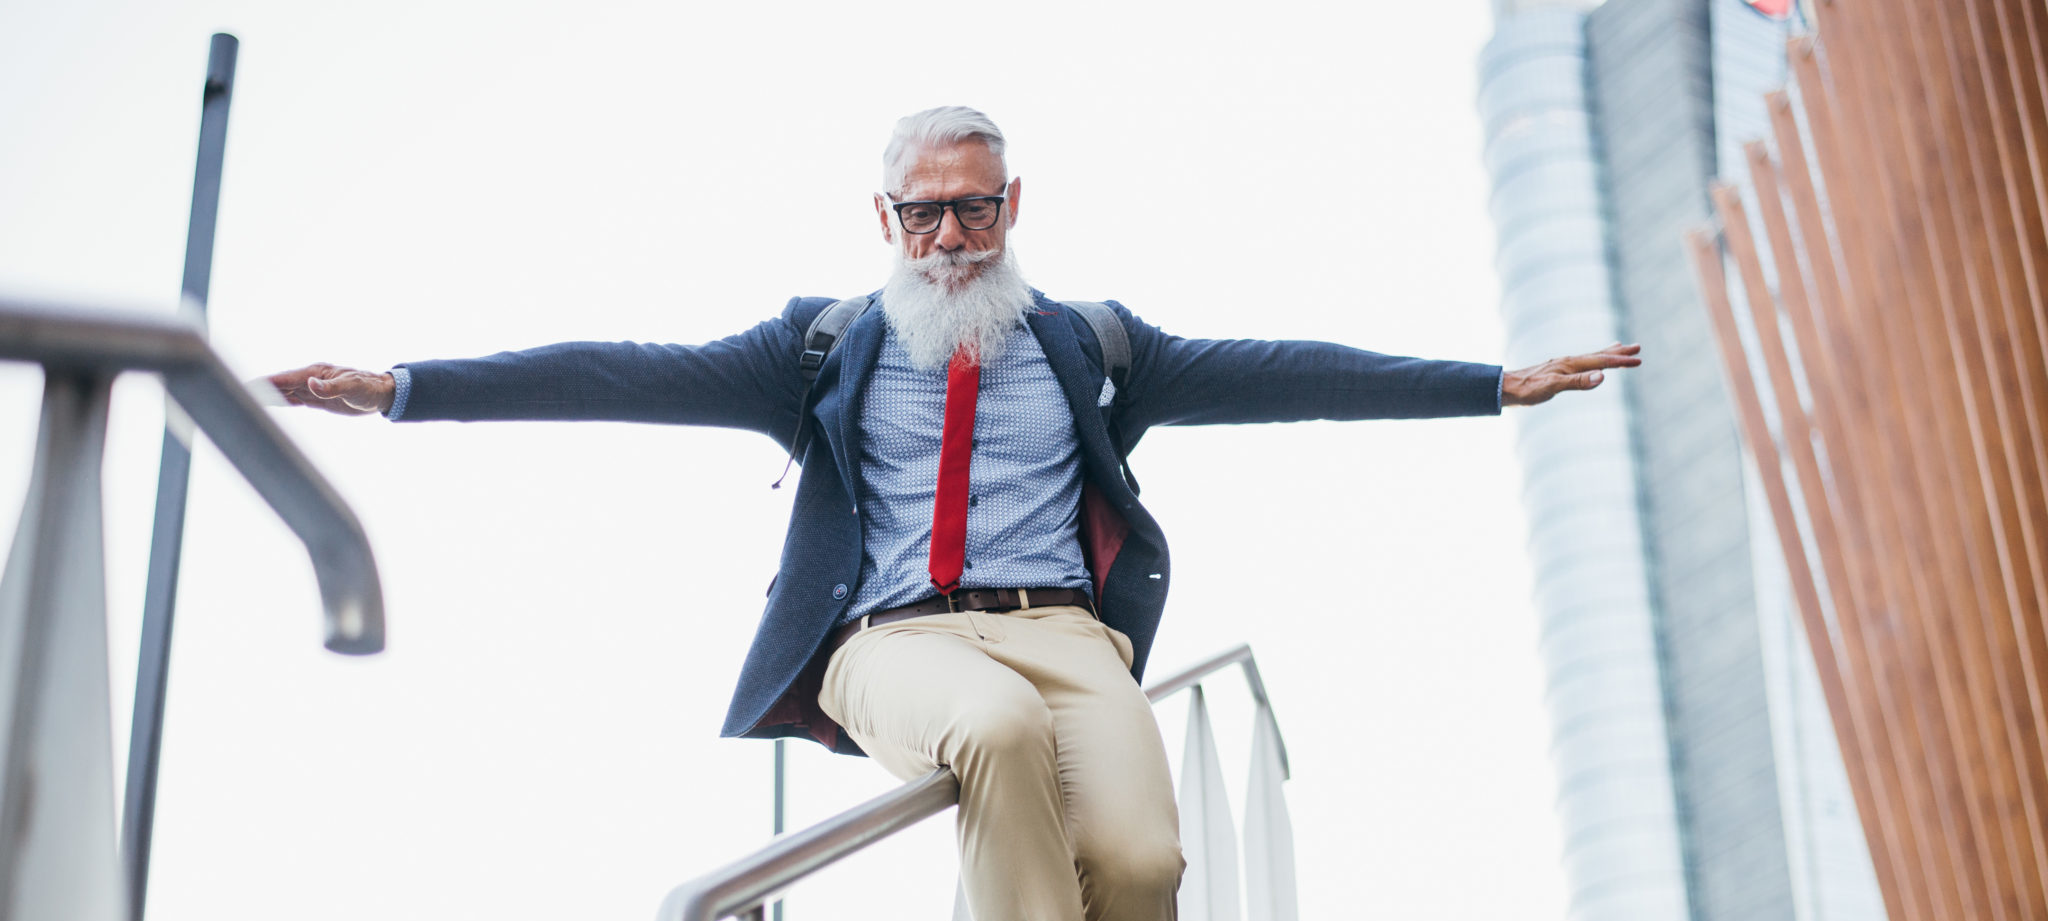 Business man sliding down railing, free from stress of managing his own website